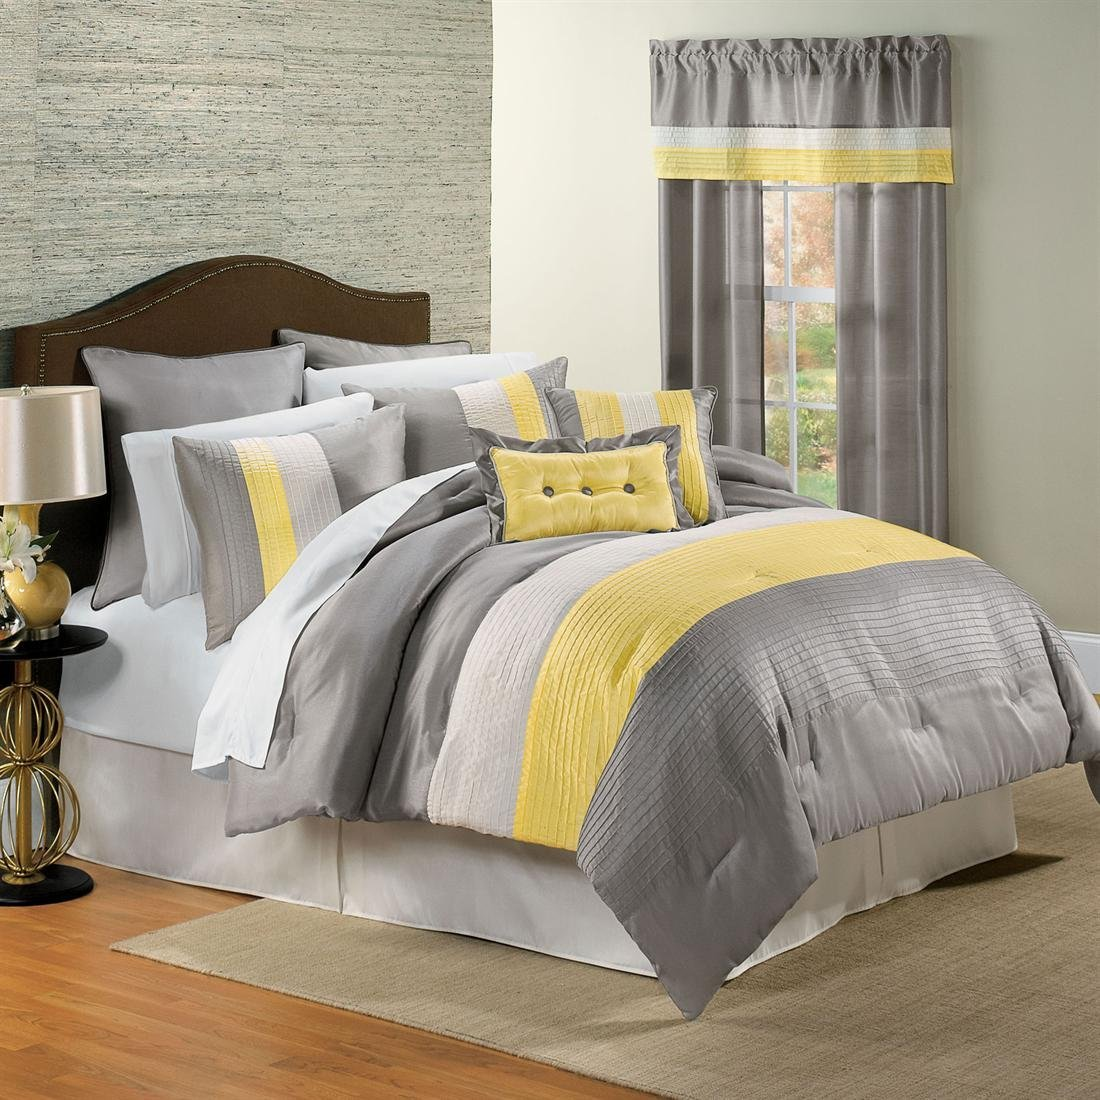 Image of: Yellow and Solid Grey Comforter Queen